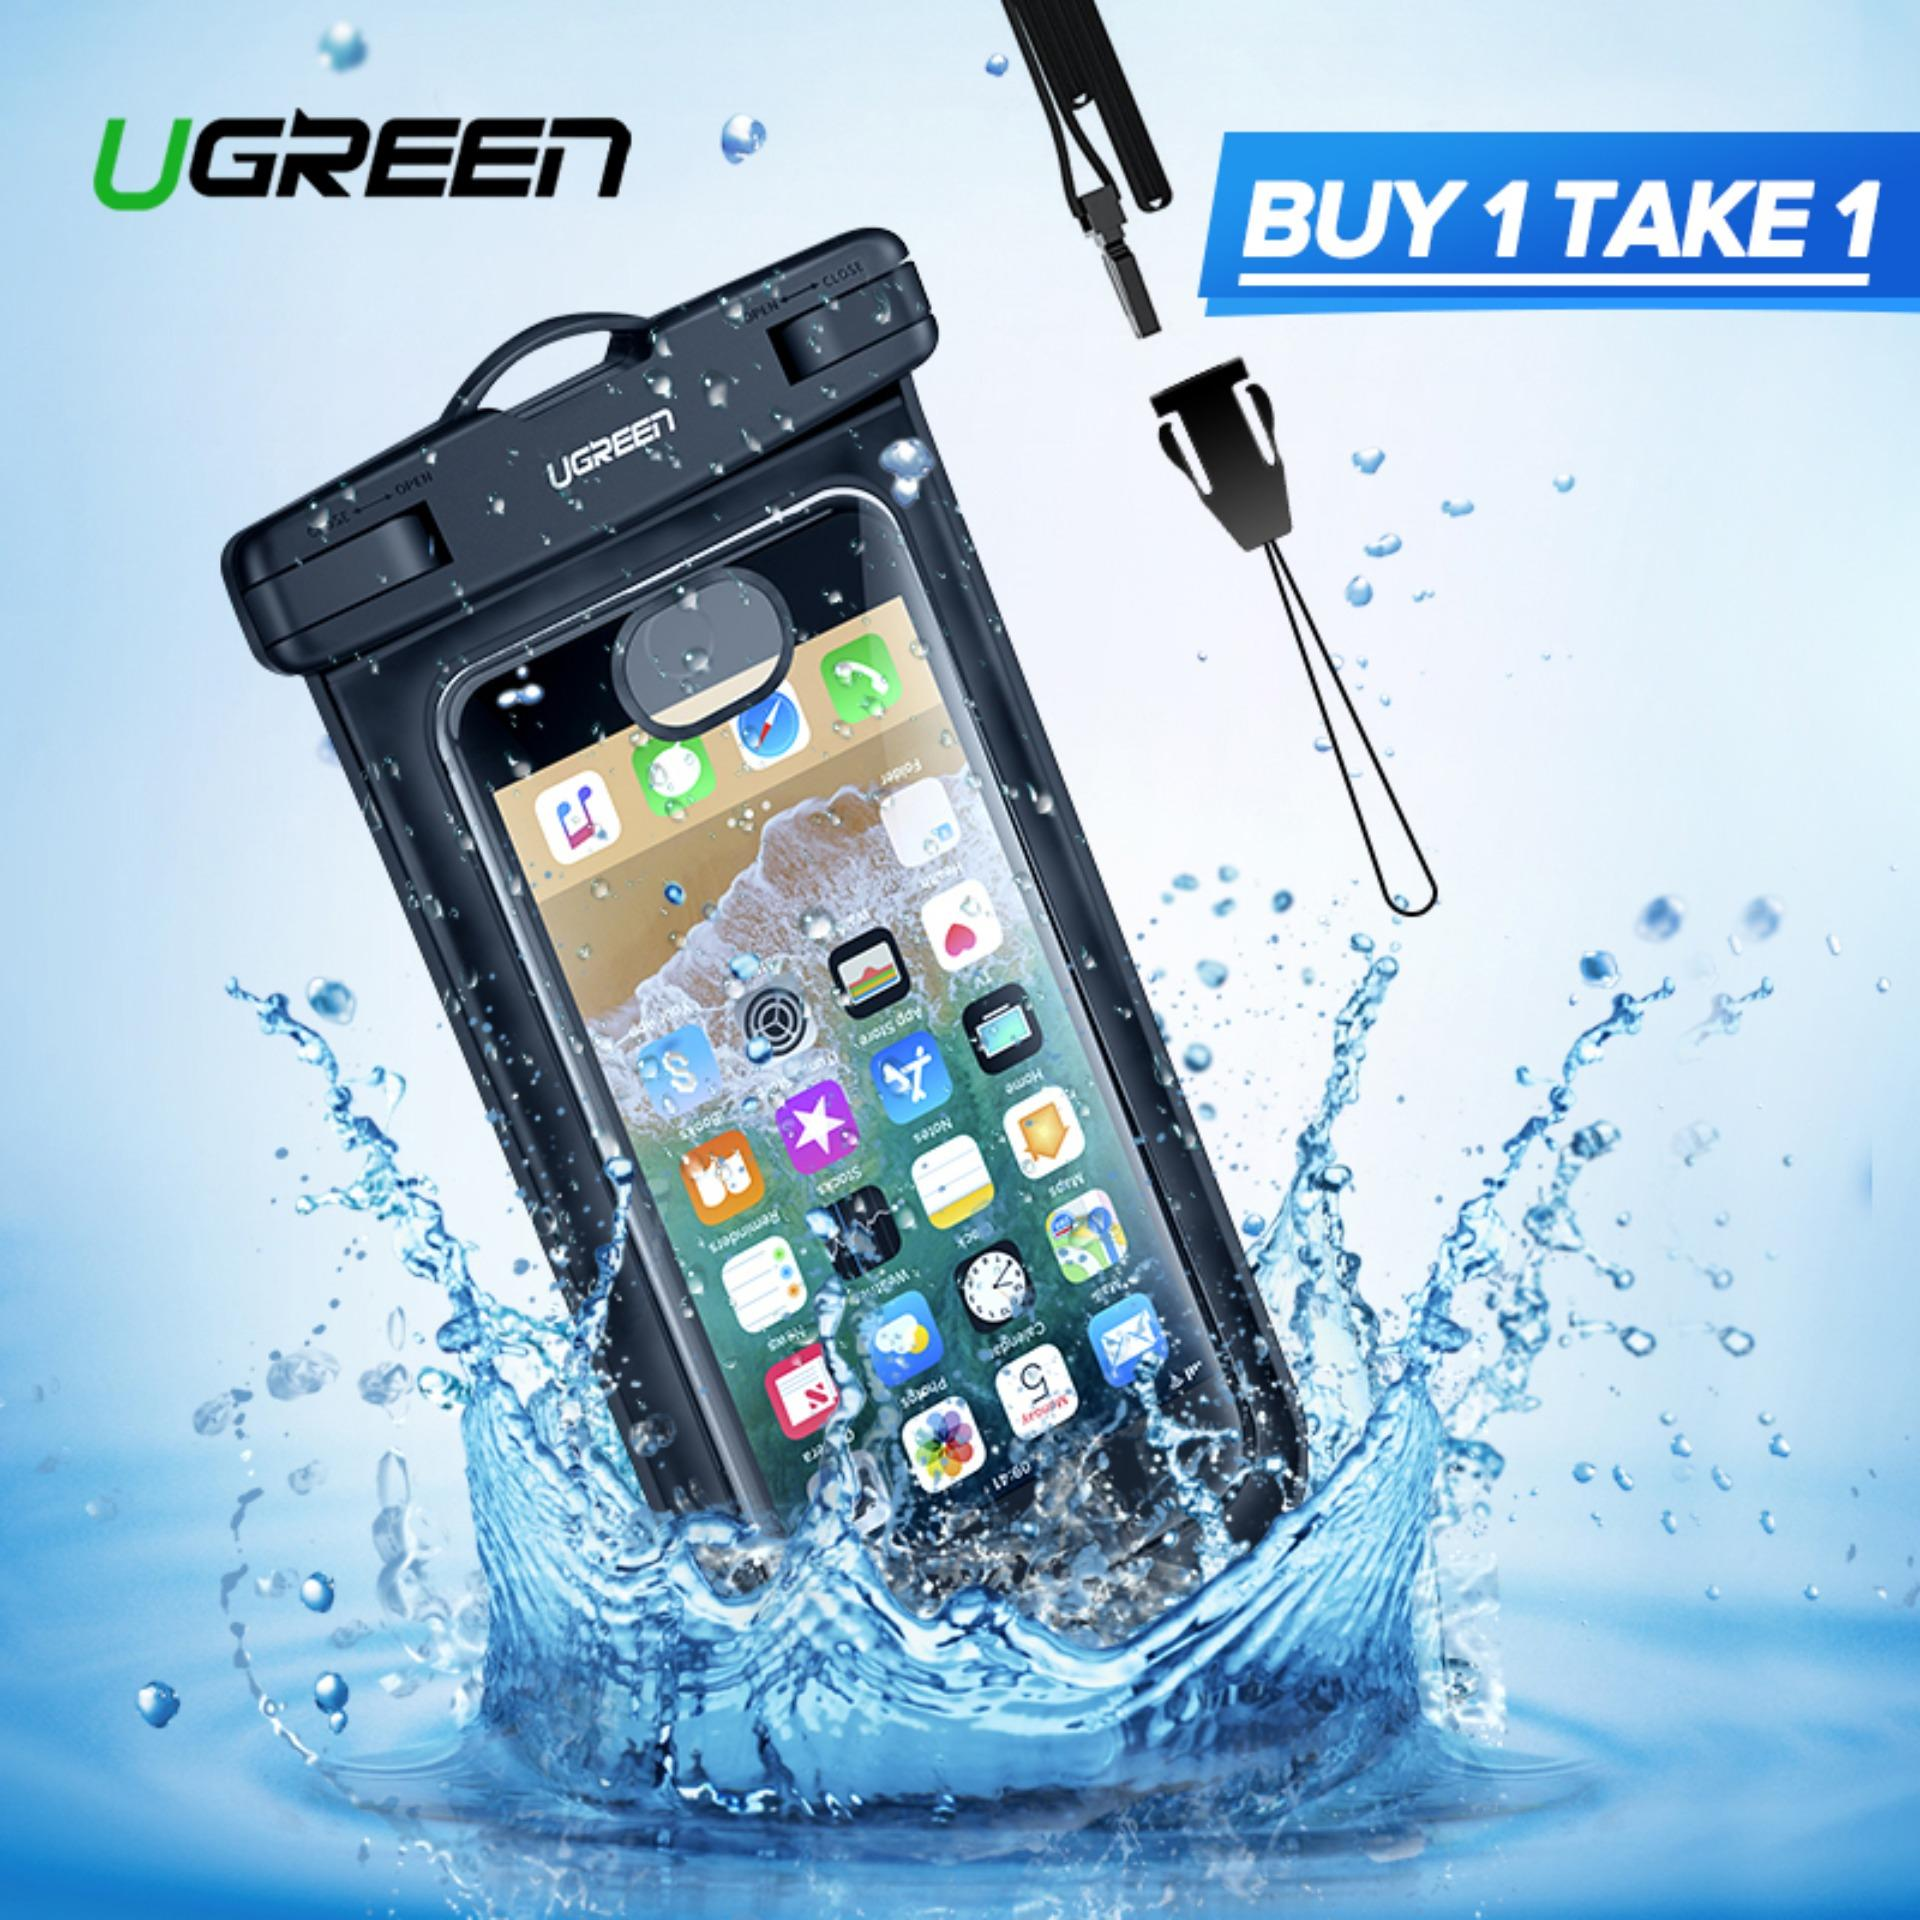 28fde5d3821983  Buy 1 Take 1 UGREEN Phone Bag Case Waterproof Case Bag Phone Pouch 6.5